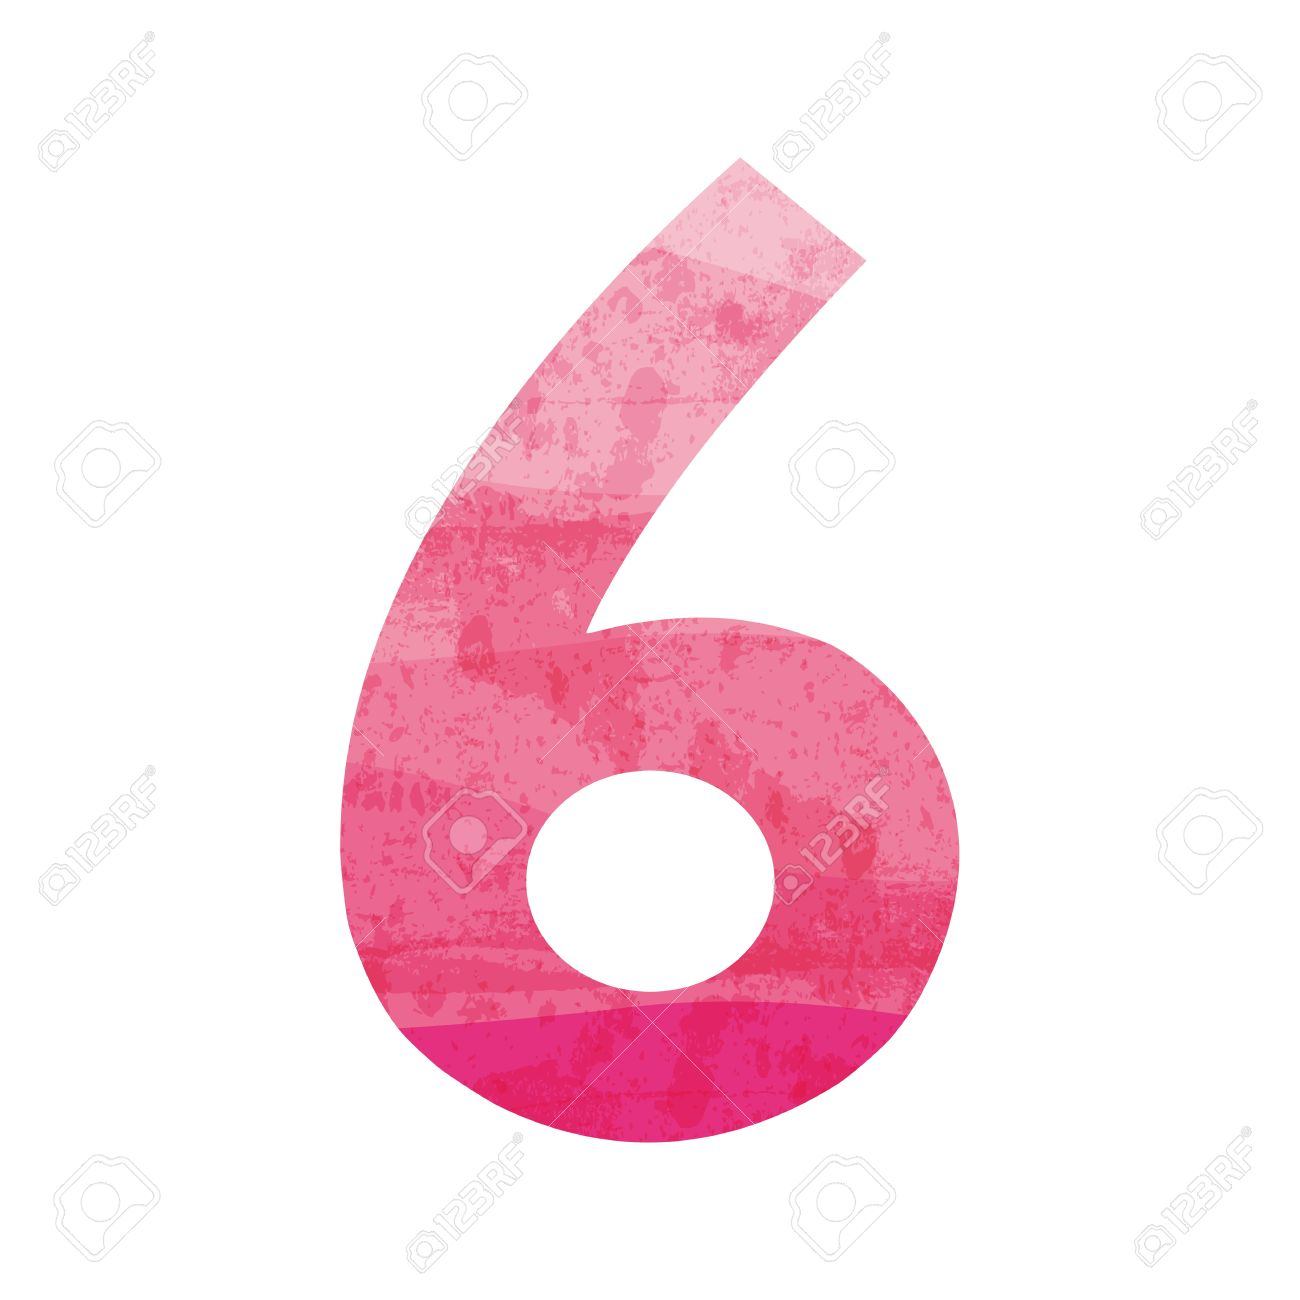 Image result for pink six